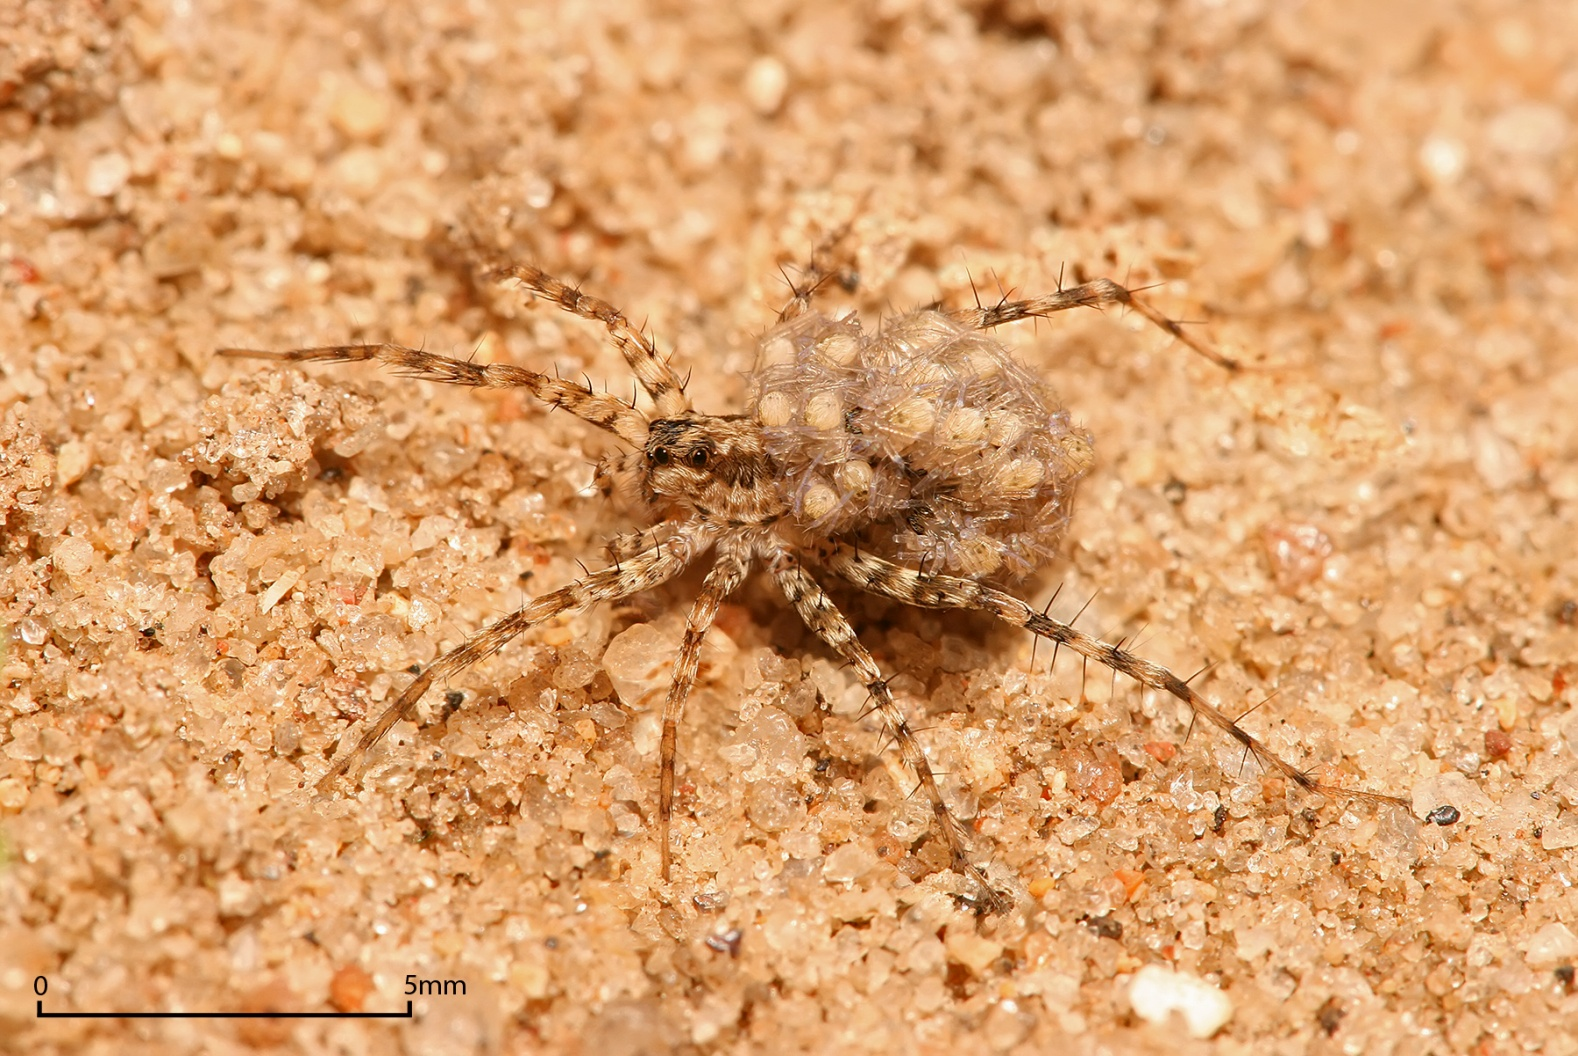 https://upload.wikimedia.org/wikipedia/commons/5/55/Lycosidae_female_carrying_young.jpg